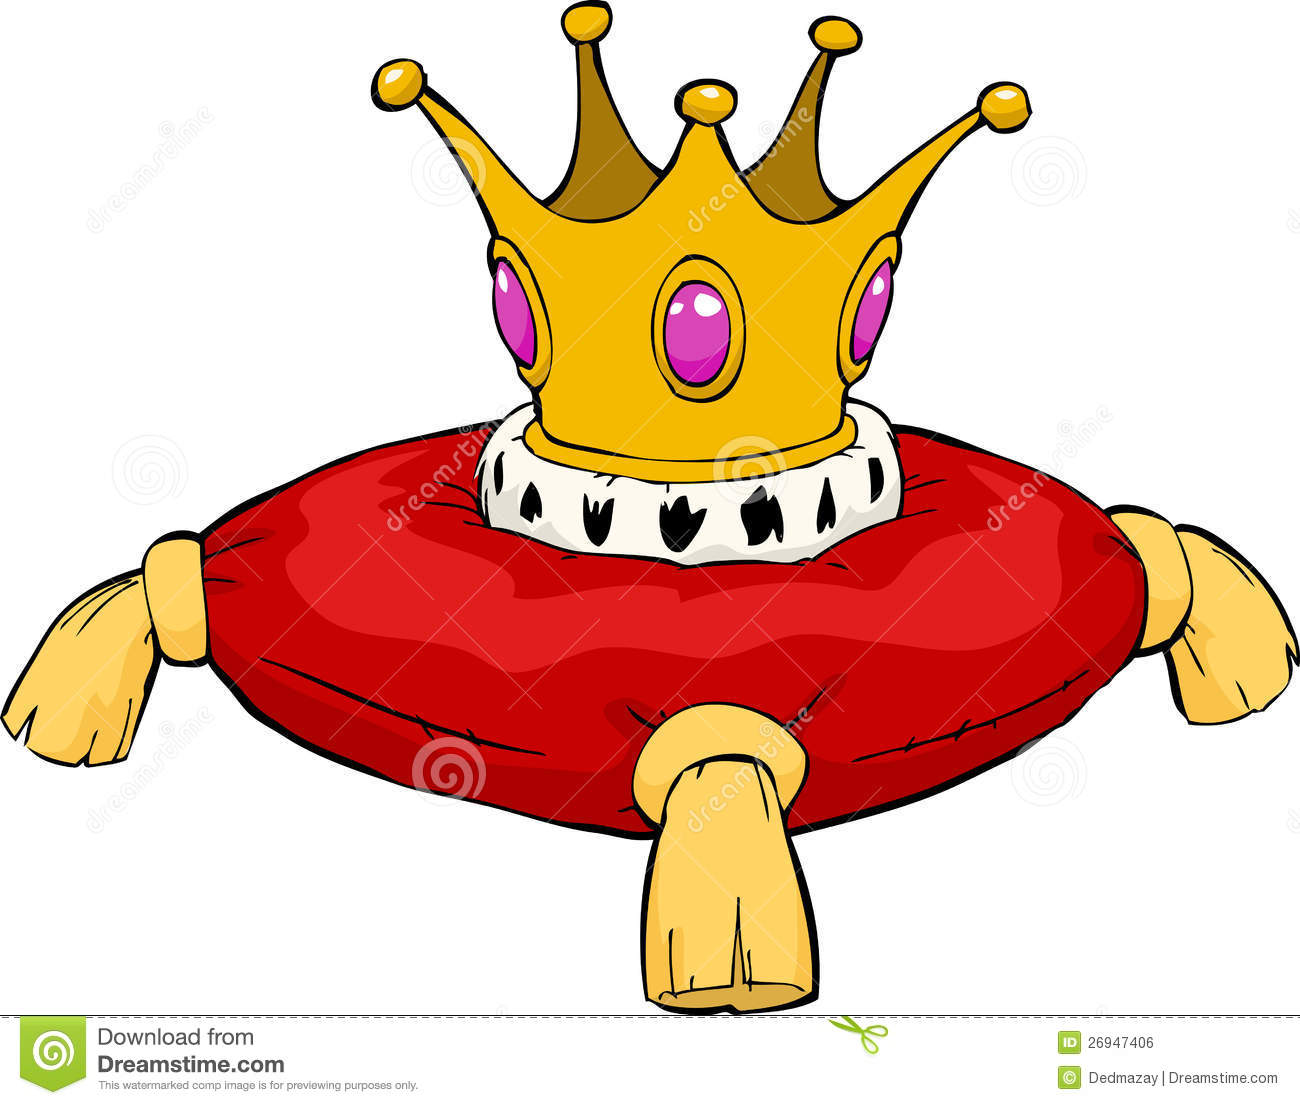 Cartoon Crown Stock Vector Illustration Of Cartoon Painting 26947406 ✓ free for commercial use ✓ high quality images. dreamstime com